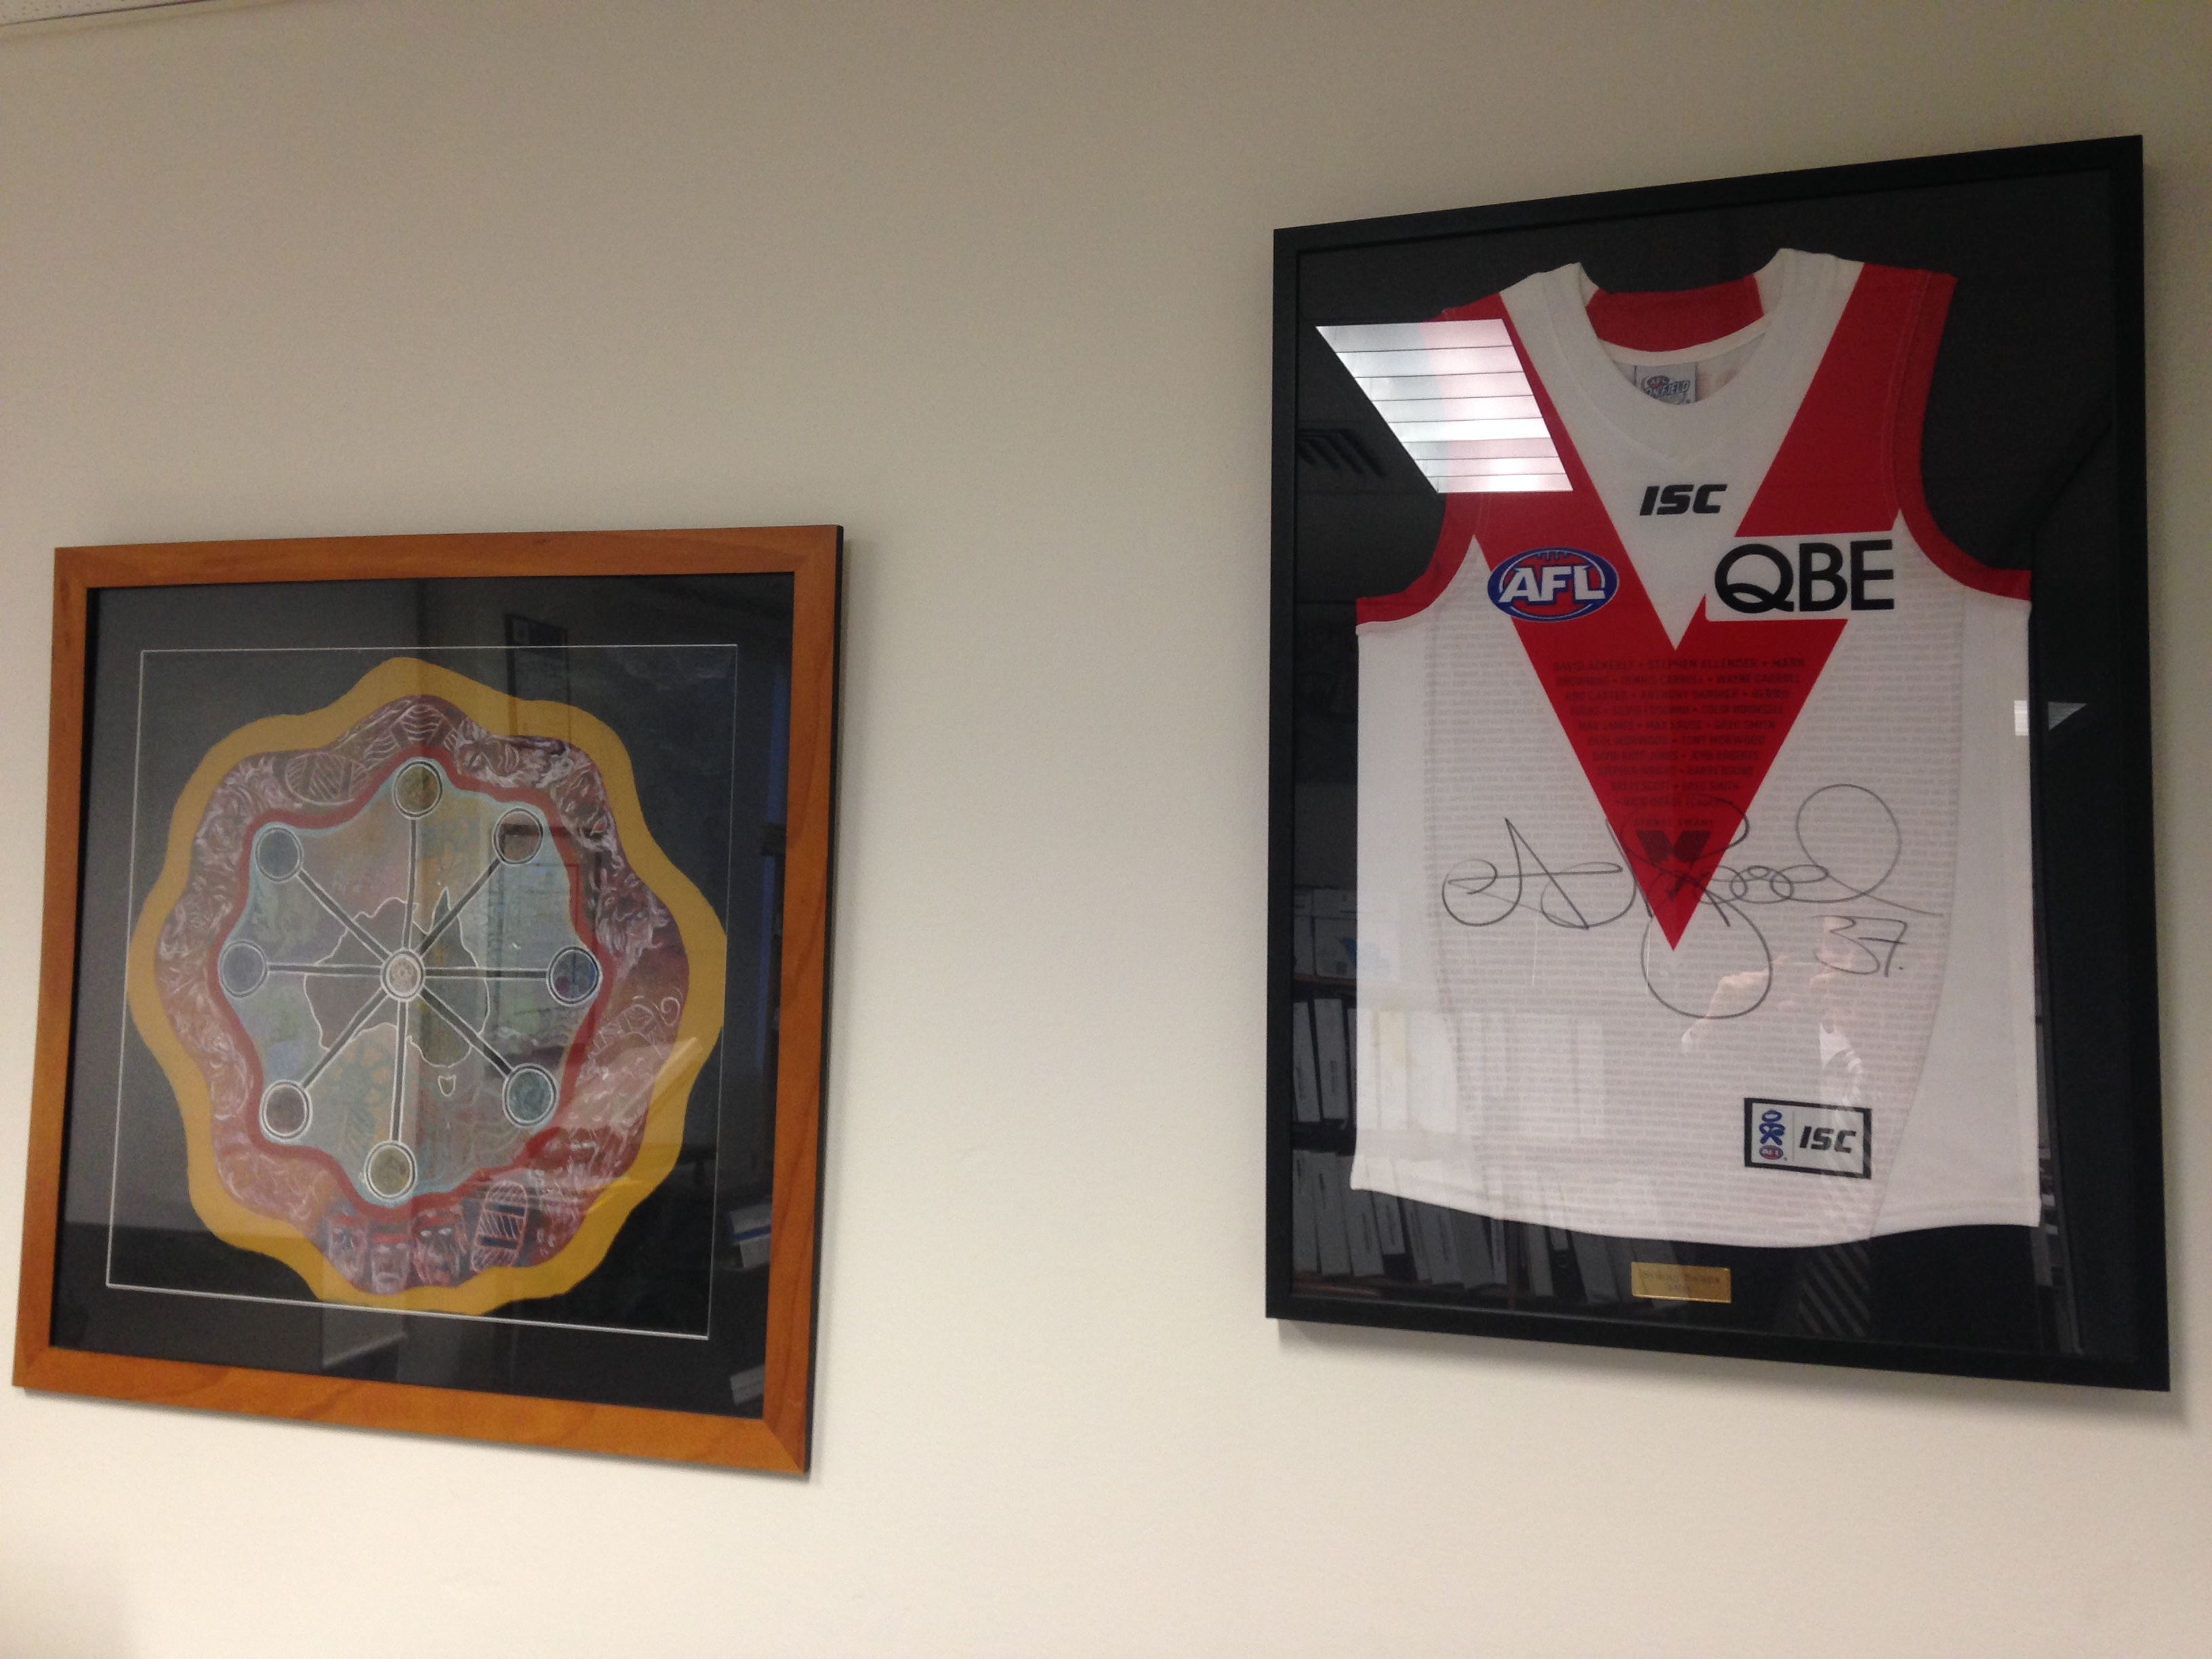 Hanging in our office; Aboriginal artwork and a signed Adam Goodes jersey